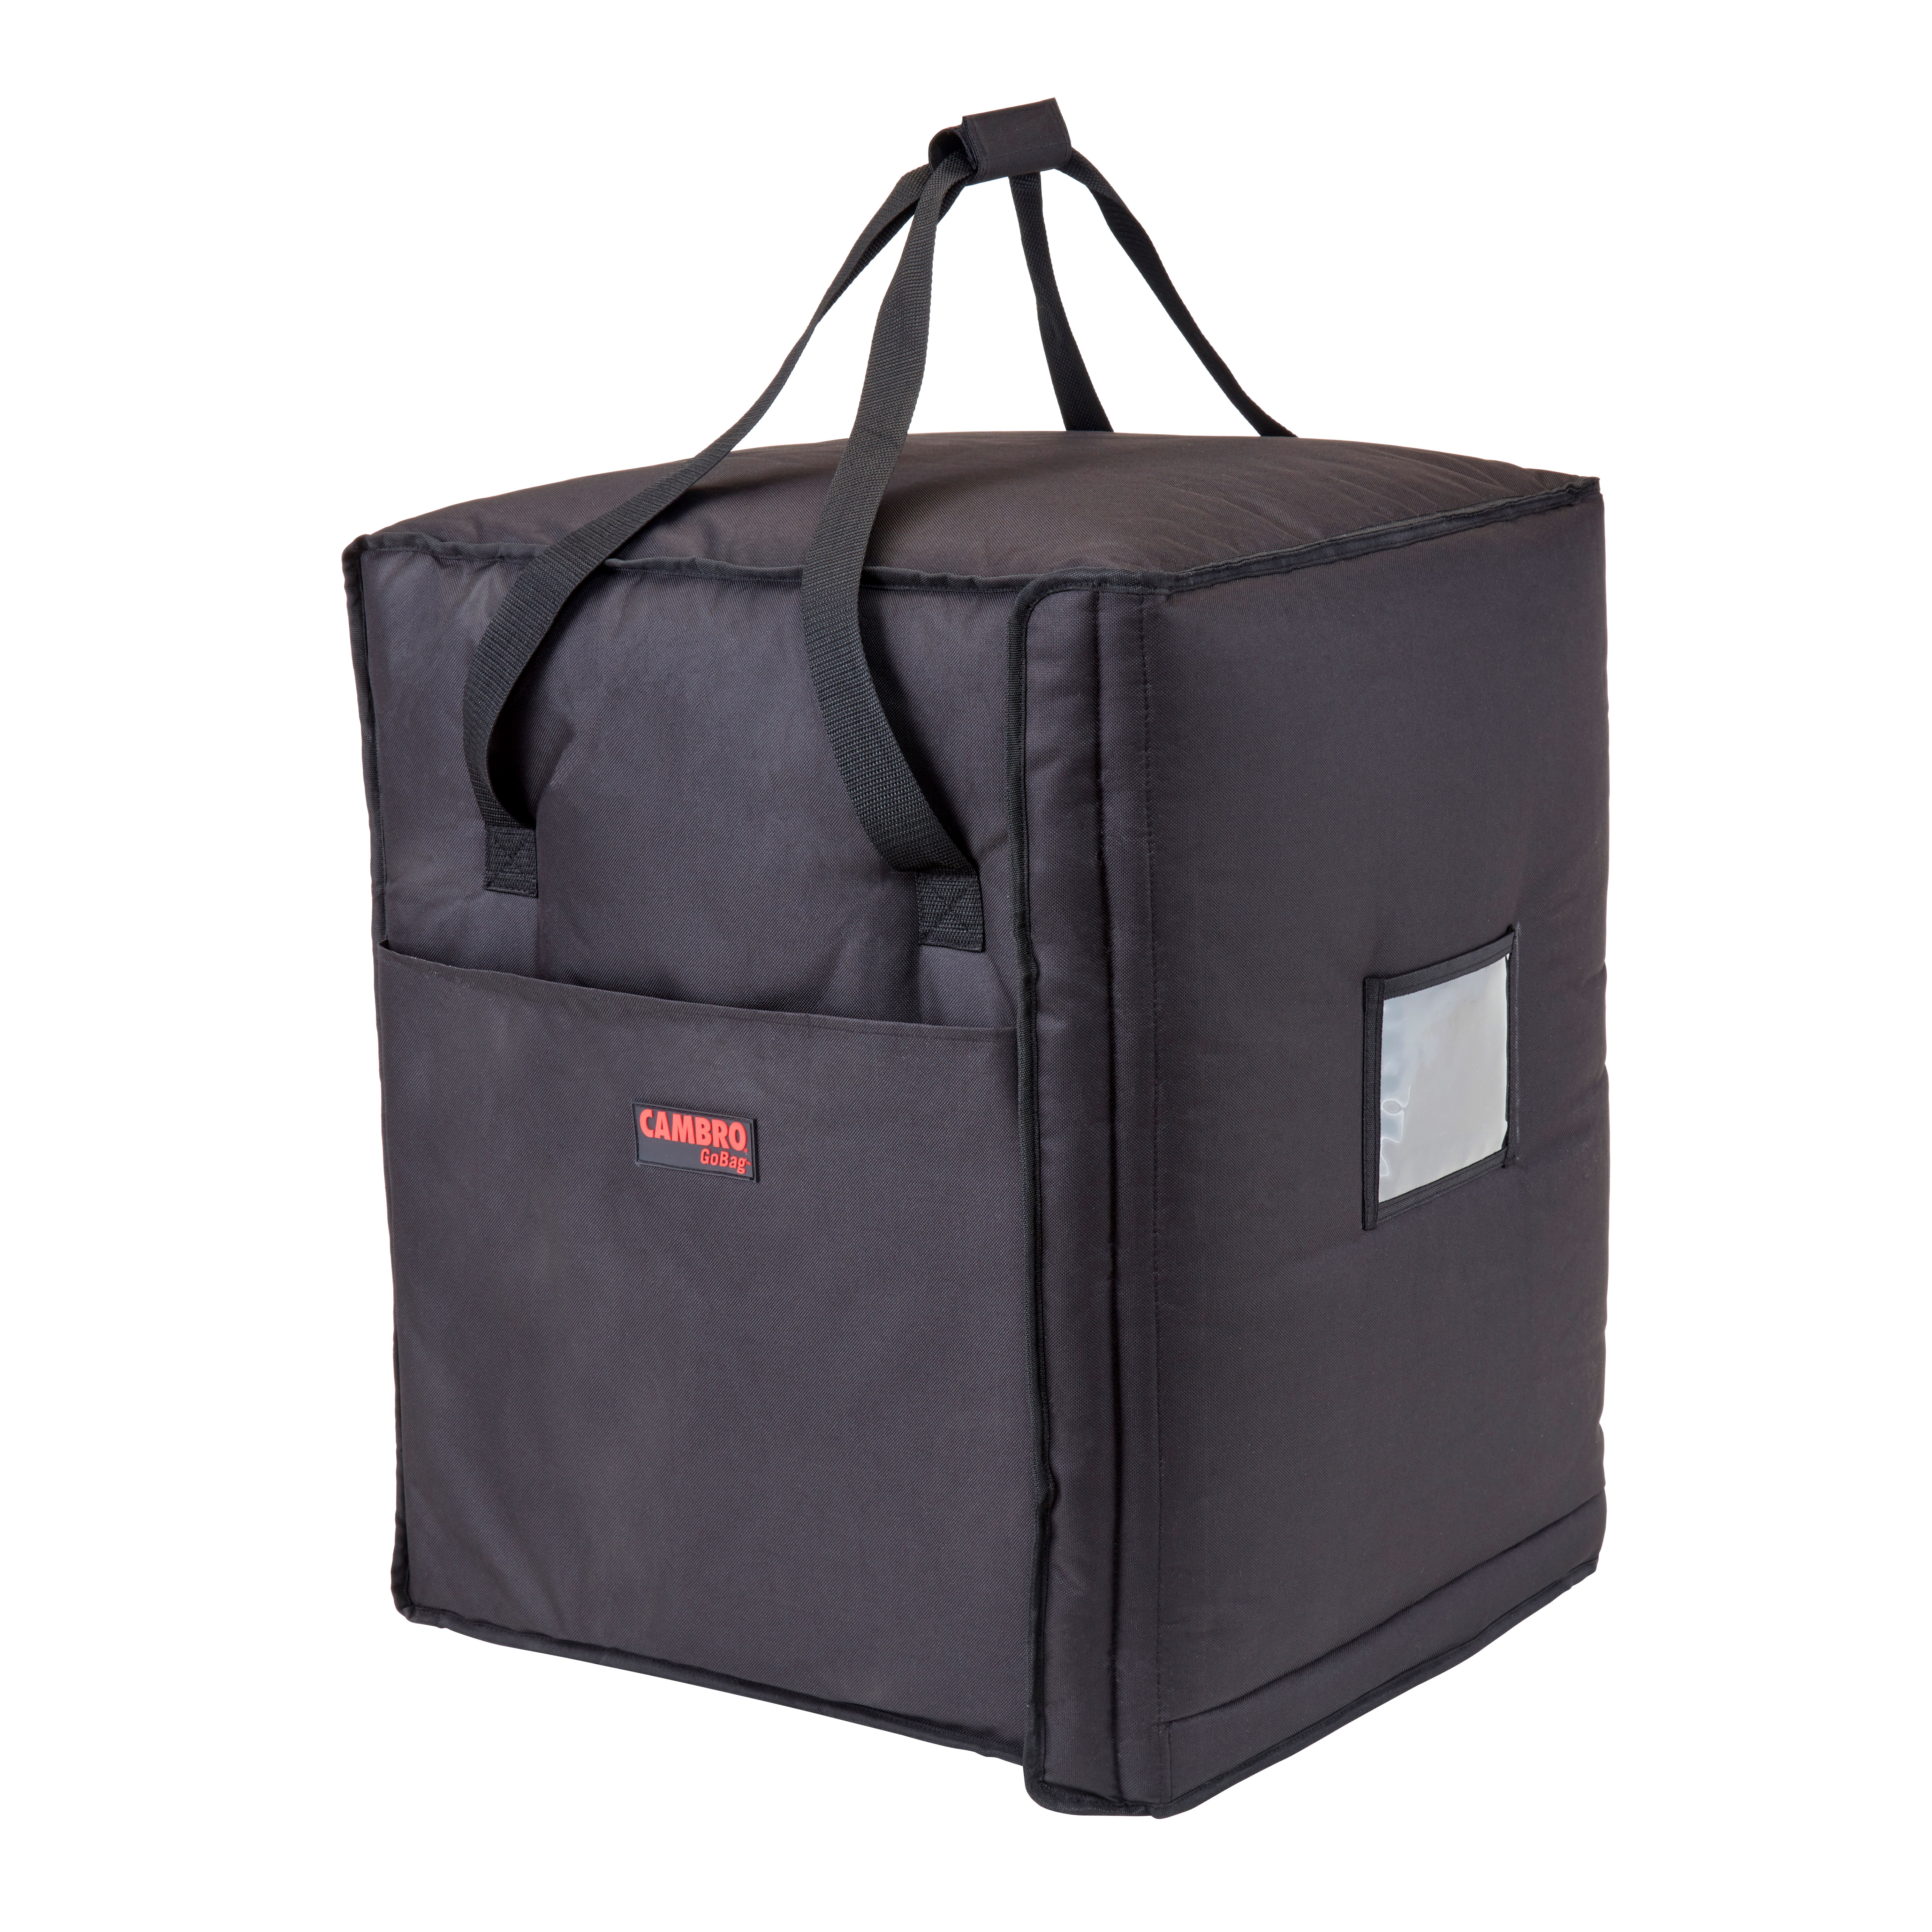 Cambro GBP1018110 pizza delivery bag